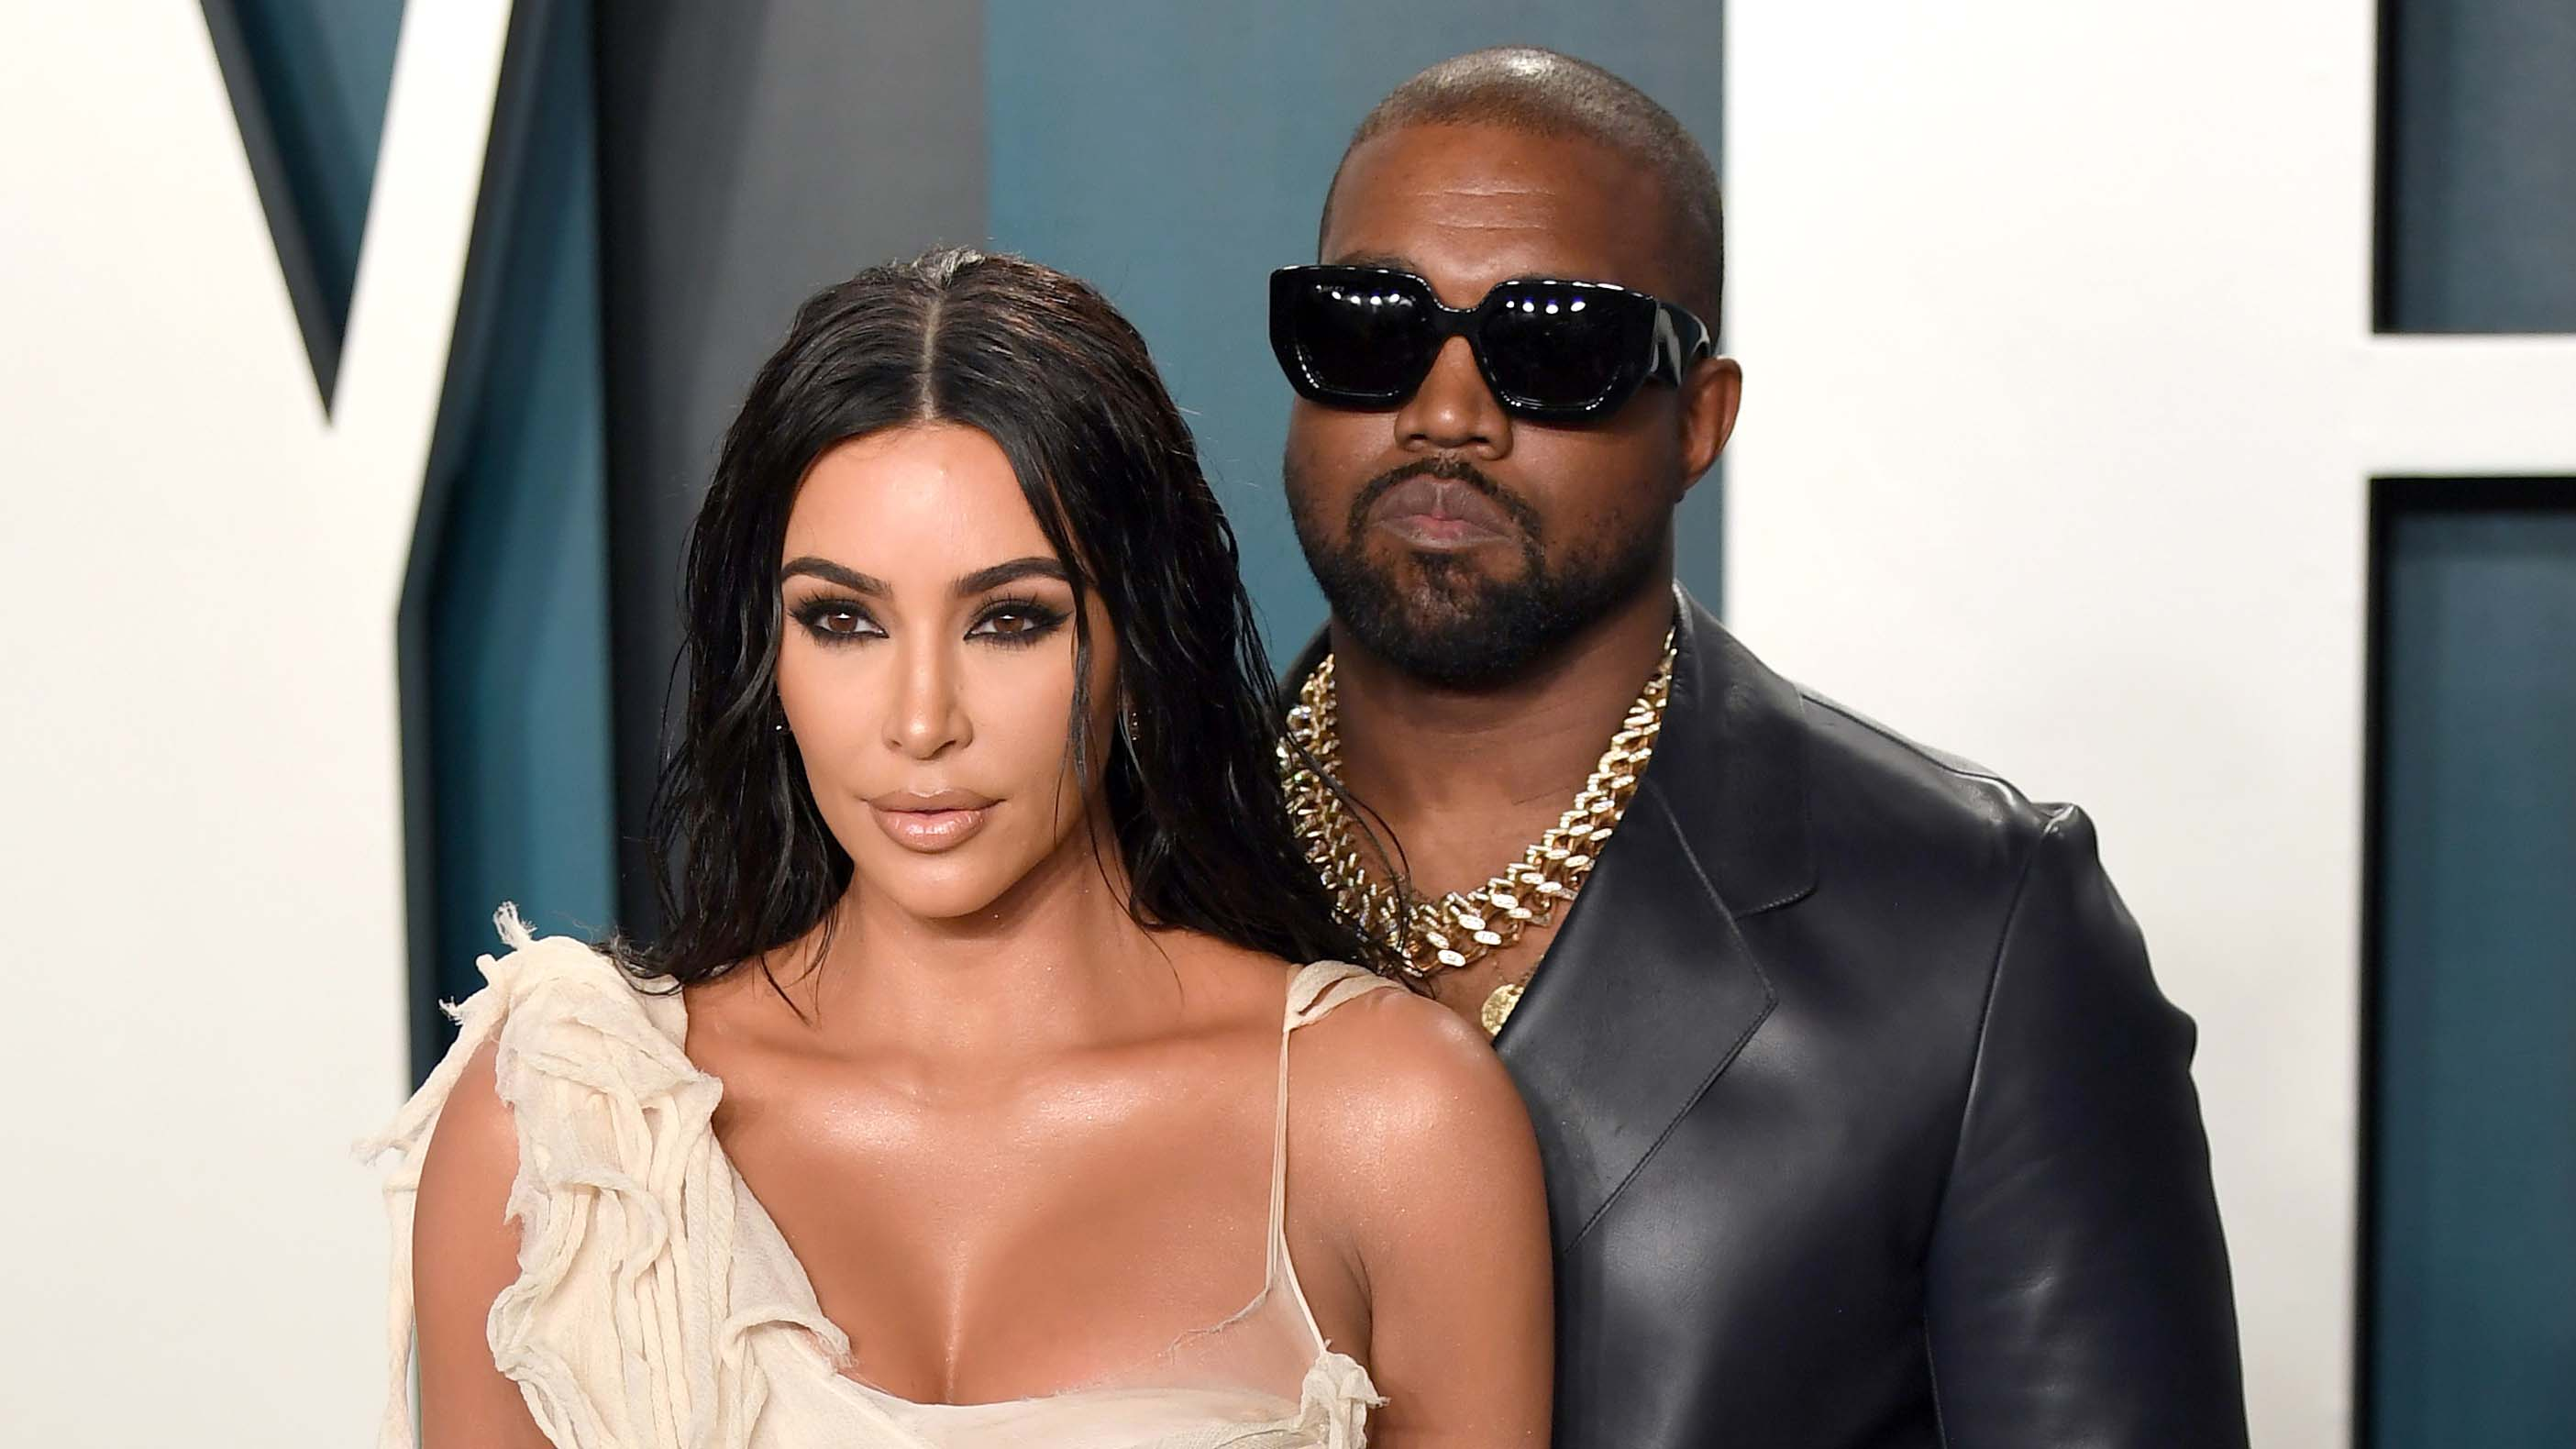 Trial Attorney Donna Spilbor discusses how California law will divide Kanye West and Kim Kardashian's joint assets.